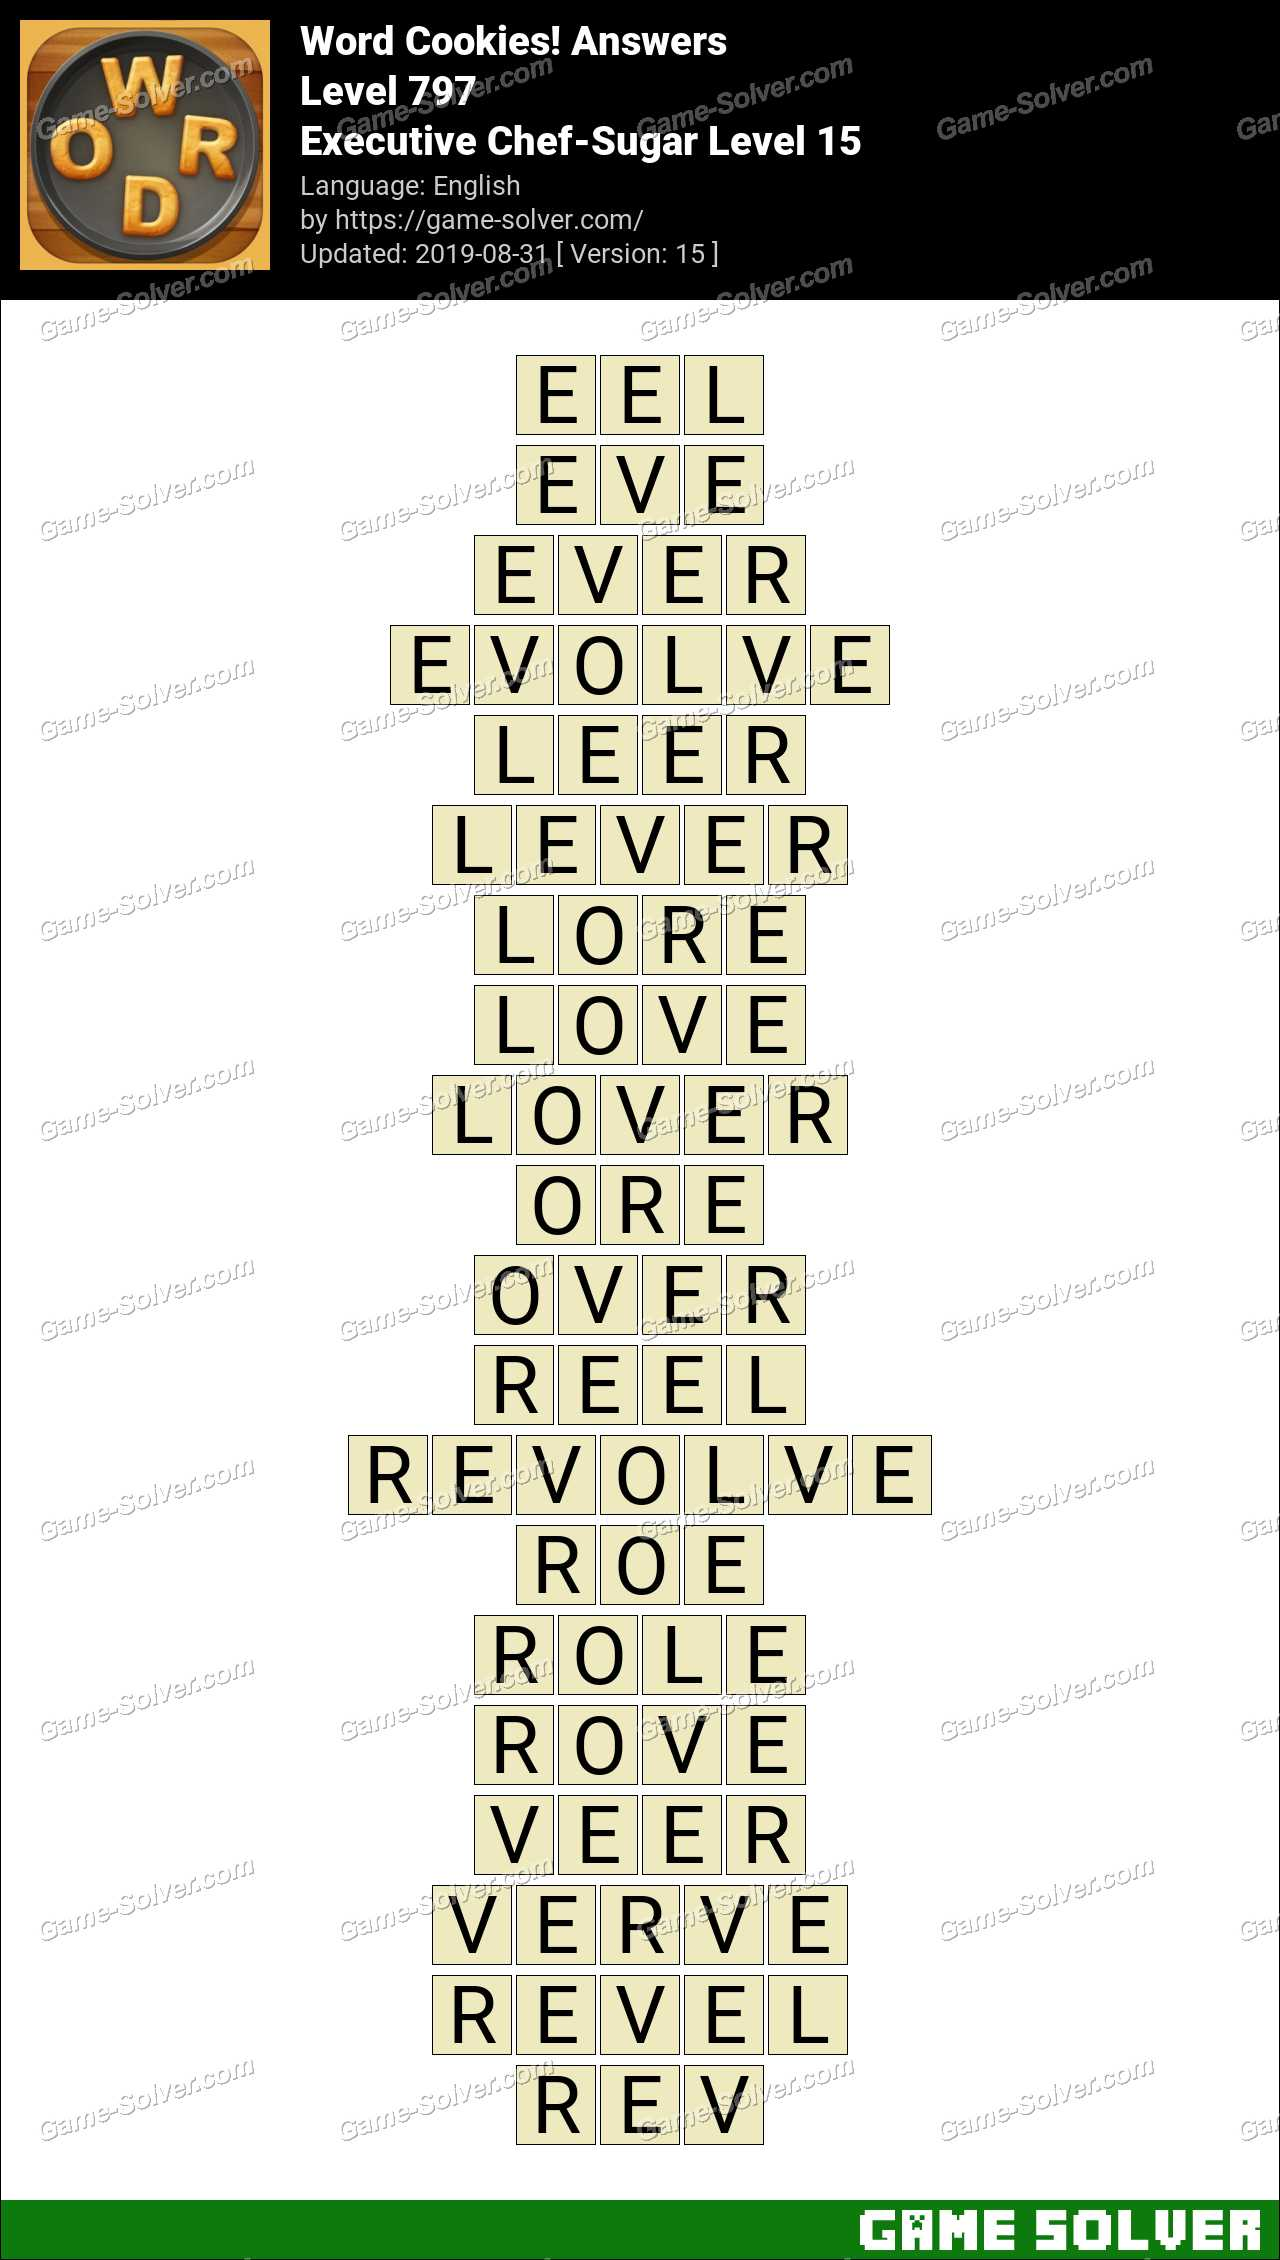 Word Cookies Executive Chef-Sugar Level 15 Answers